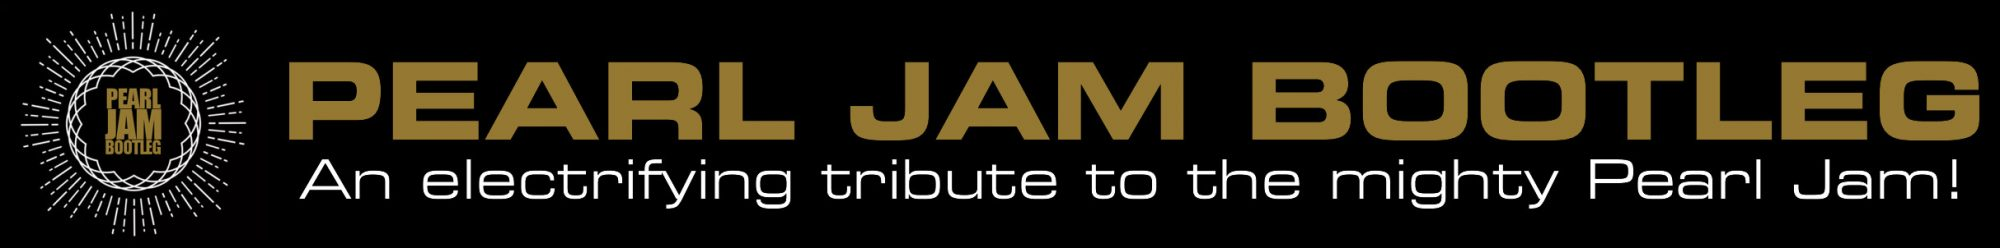 Pearl Jam Bootleg – An electric tribute to the mighty Pearl Jam!